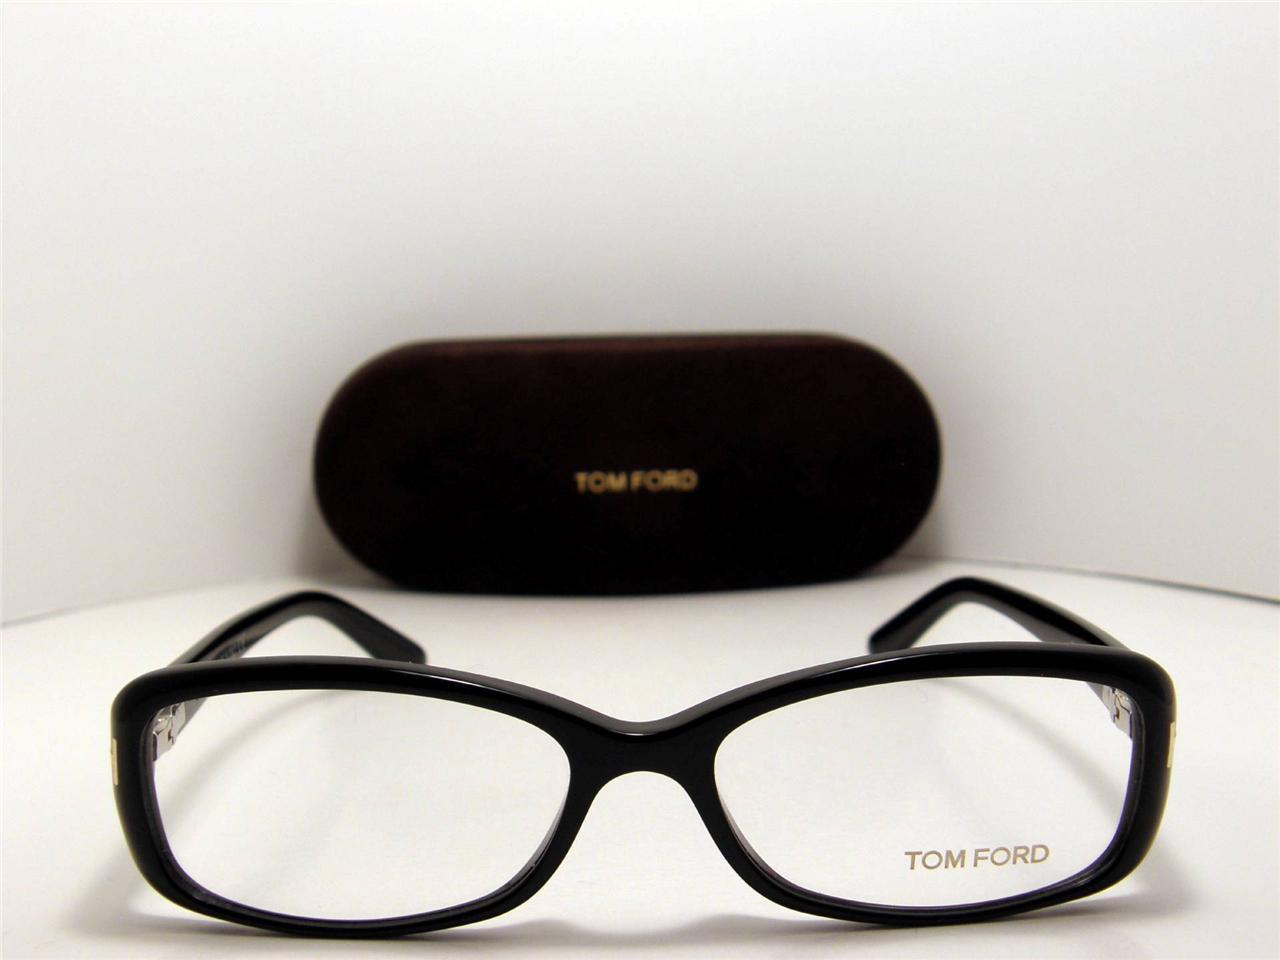 5e8fb10305972 New Authentic Tom Ford Eyeglasses TOM FORD and 50 similar items. S l1600